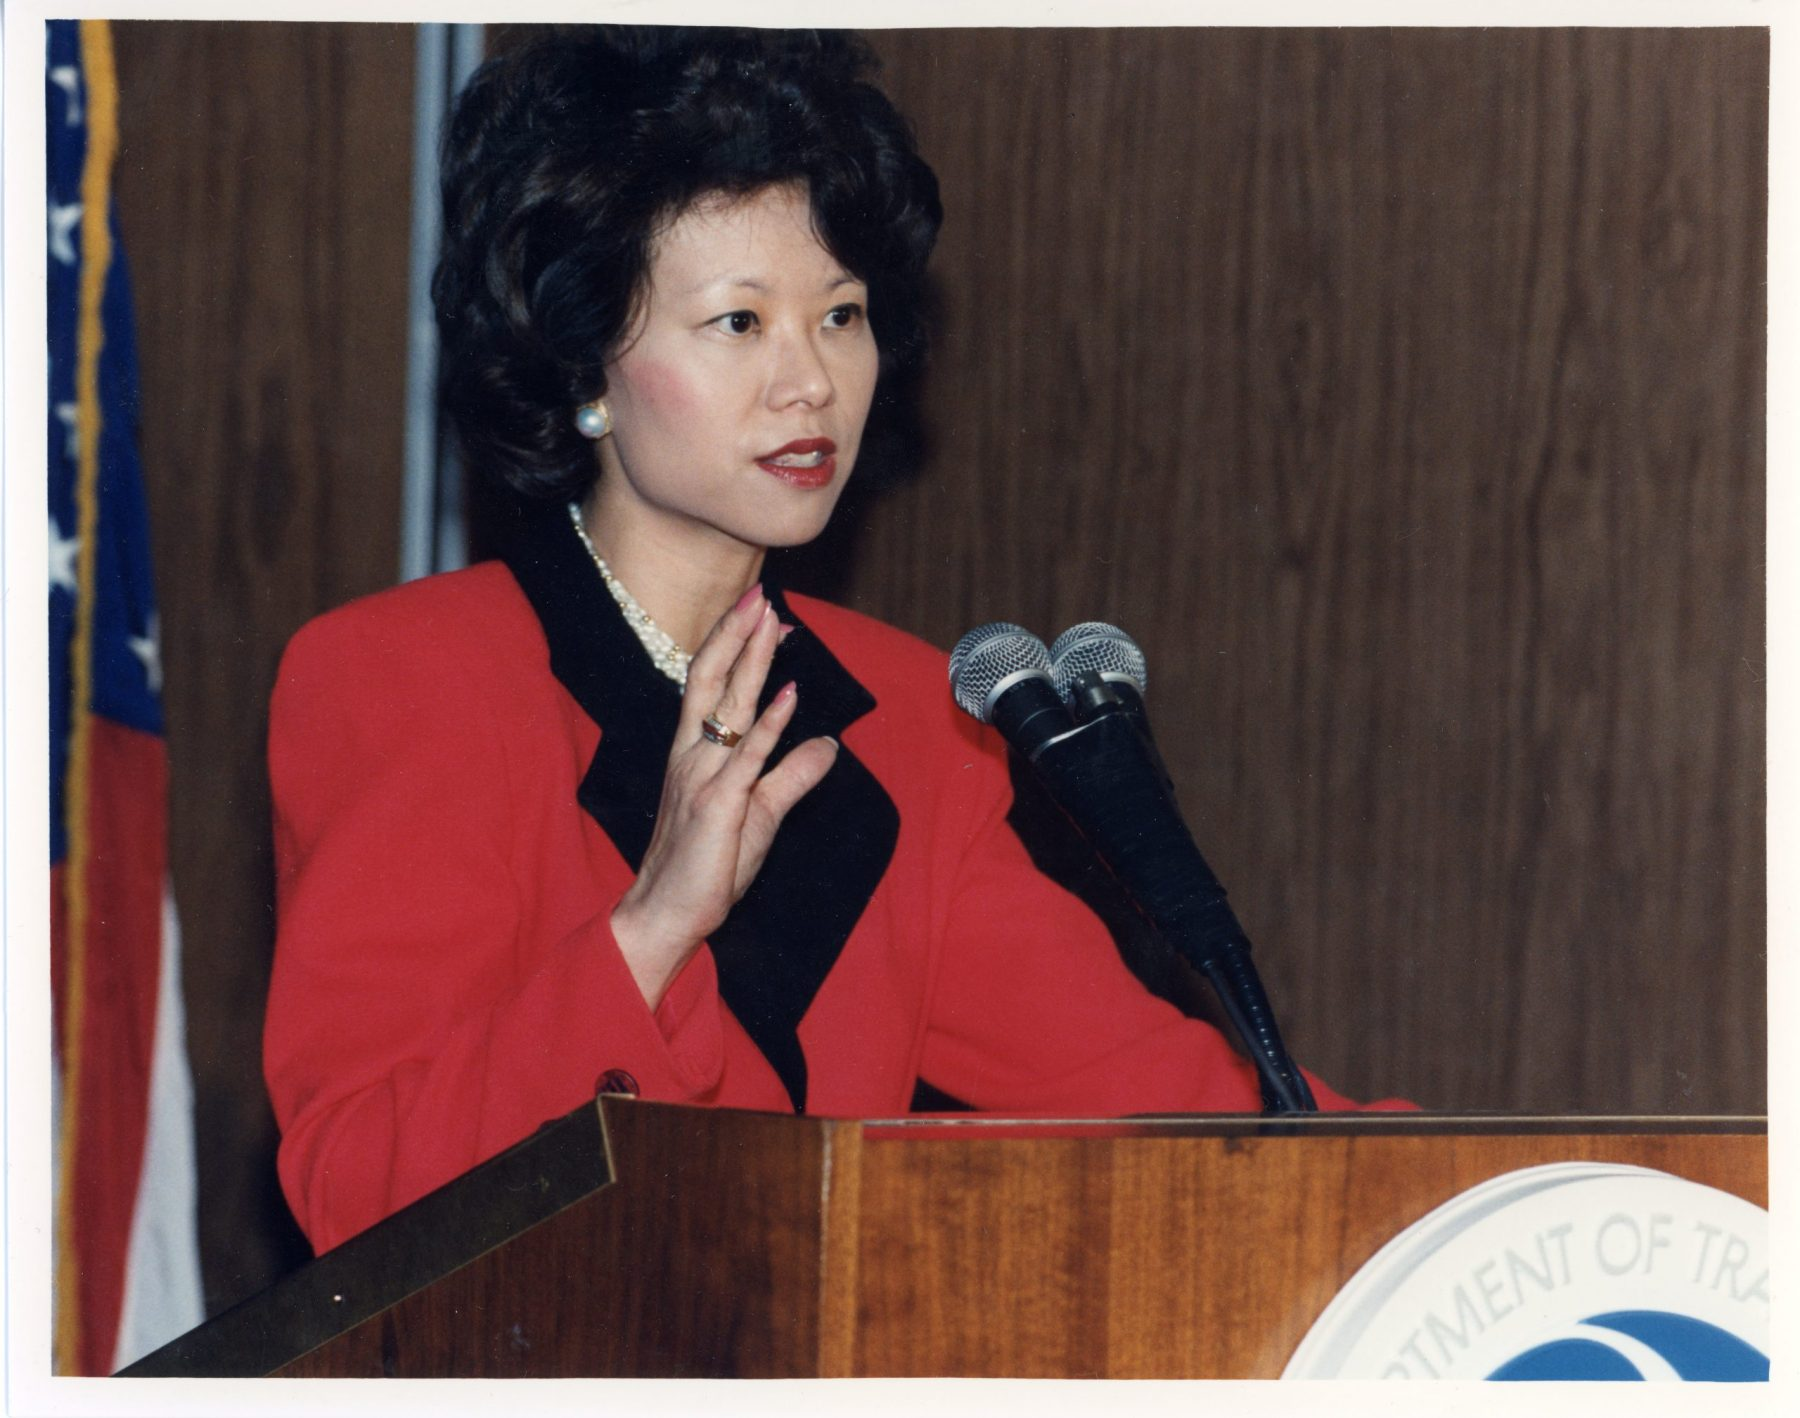 U.S. Deputy Secretary of Transportation Elaine Chao giving the budget presentation at a press conference. U.S. Department of Transportation, Washington, D.C.